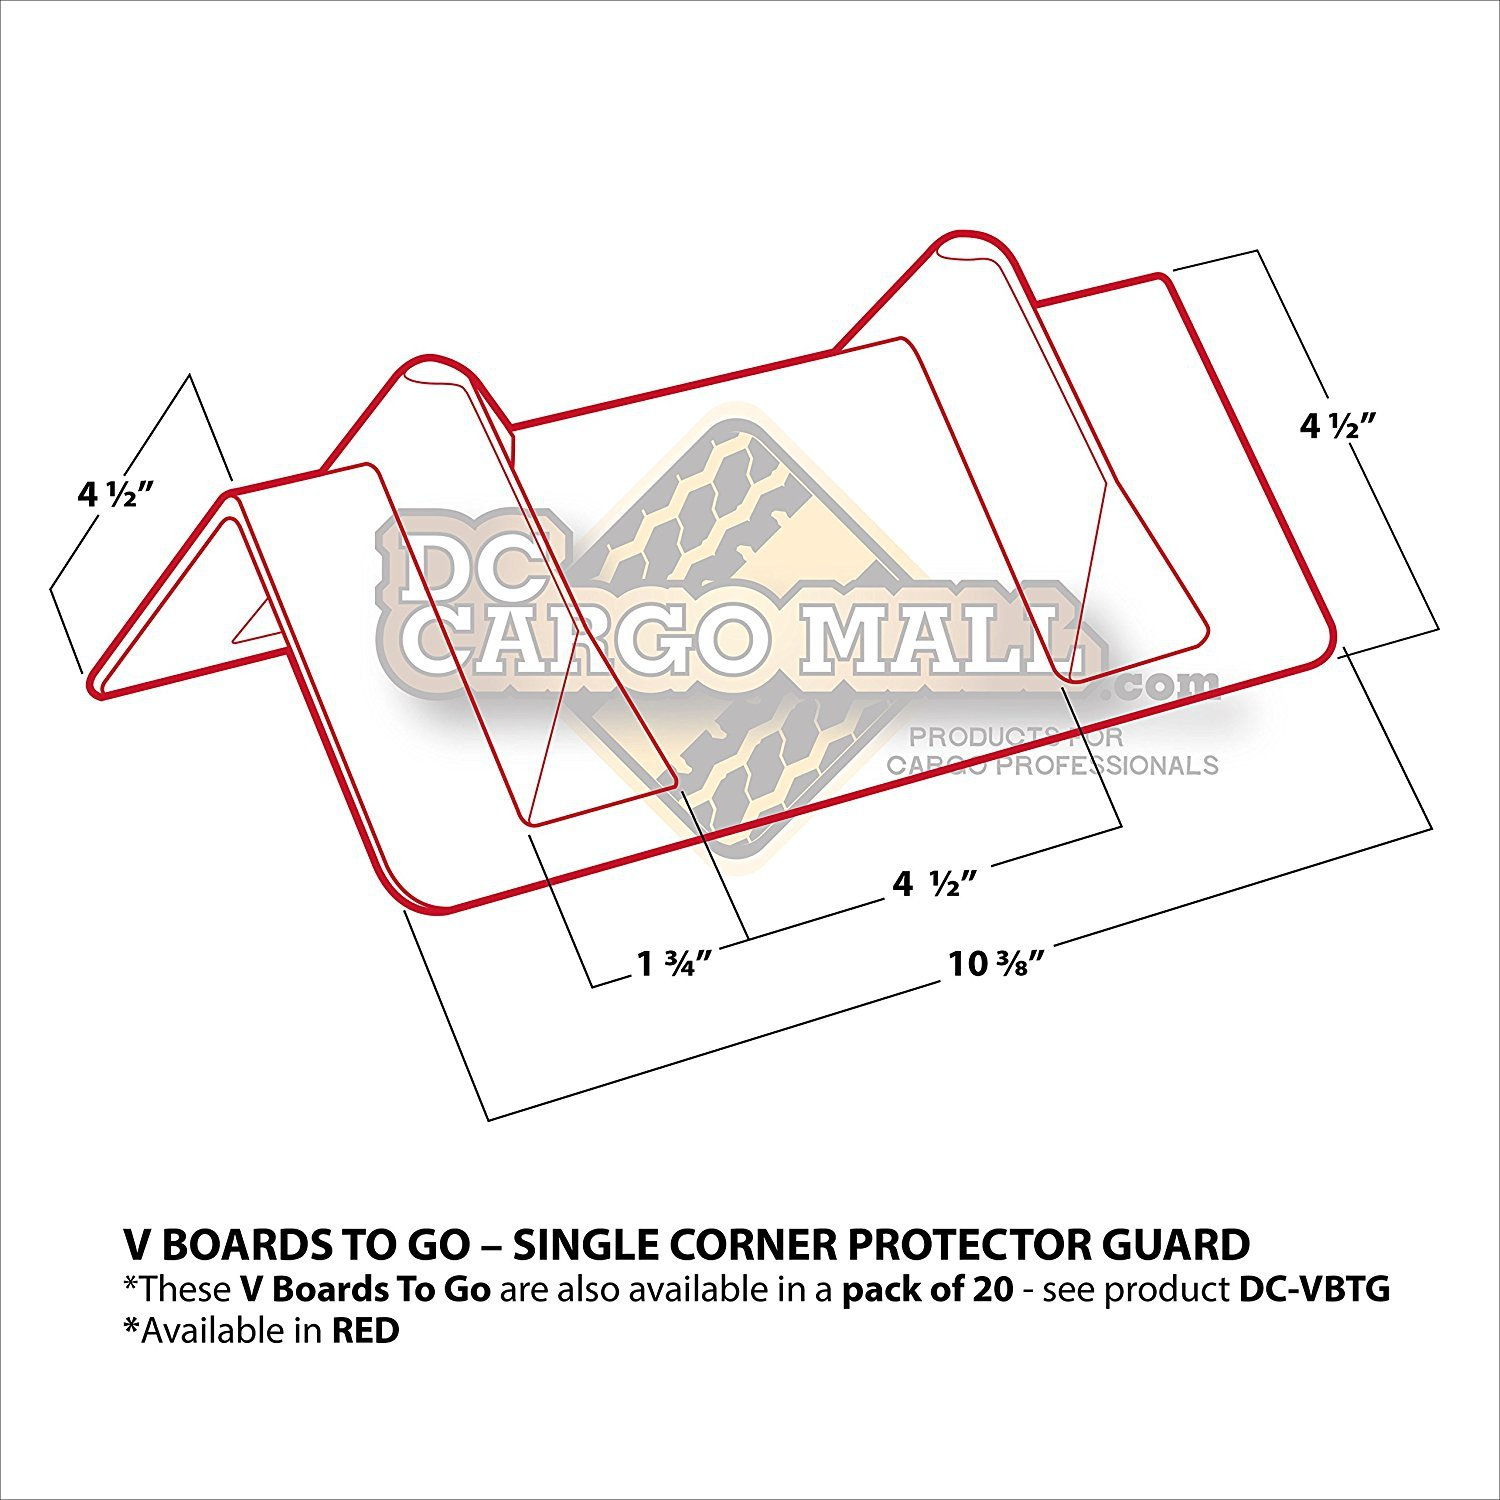 Cargo Load Corner Edge Protector and Tie-Down Strap Guard Bumper Cushion Vee Board Carry-on Pack of 20 Red VBoards DC Cargo Mall 11 x 4 x 4